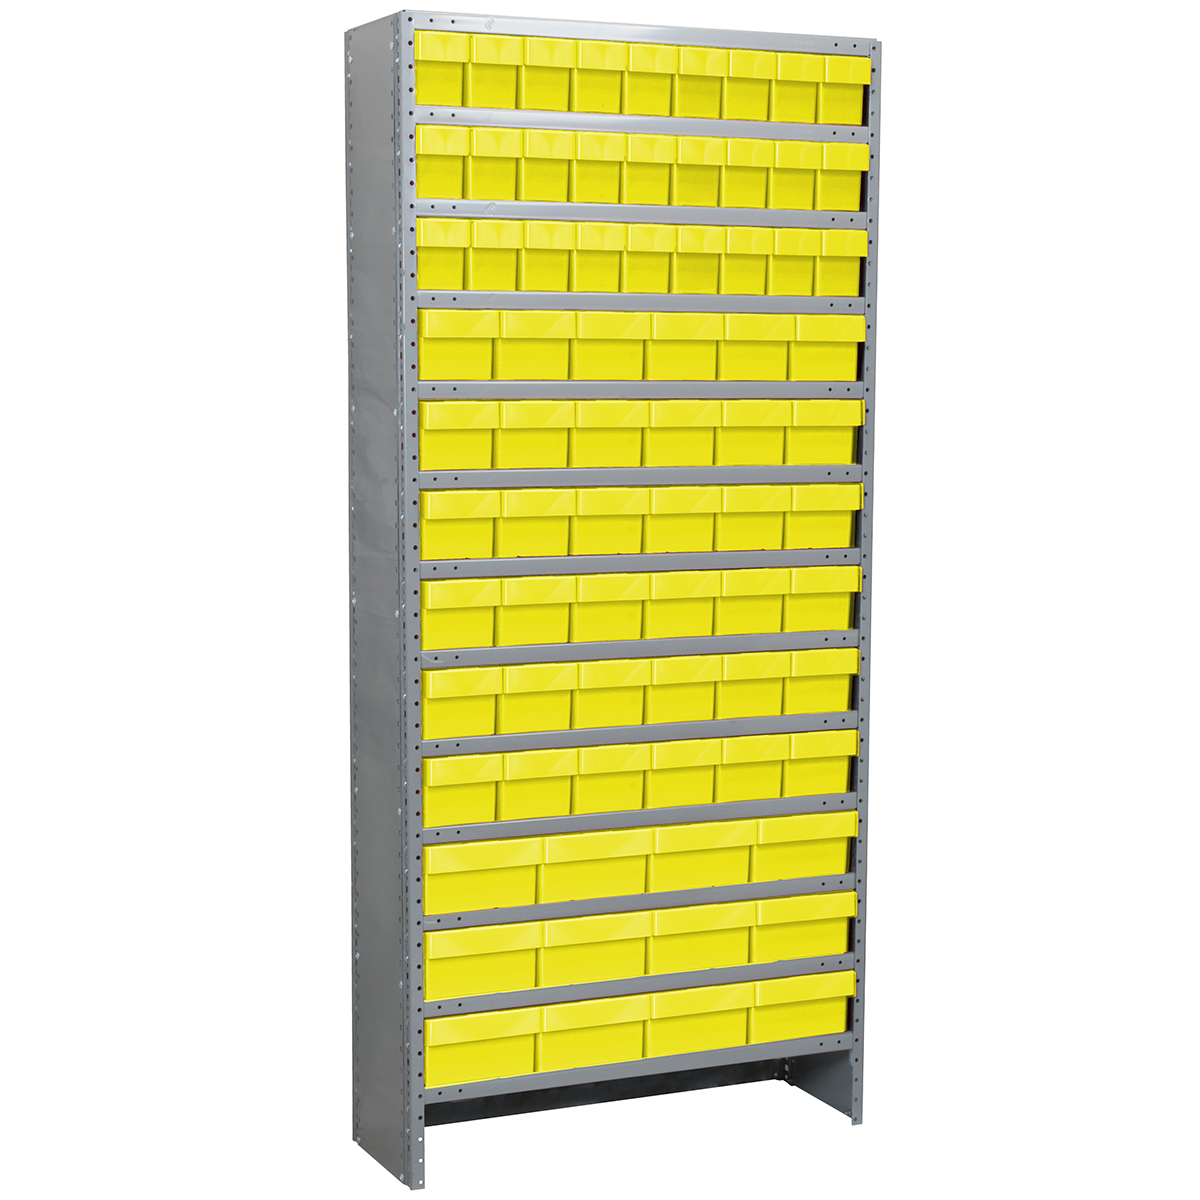 Enclosed Steel Shelving Kit, 12x36x79, 78 AkroDrawers, Gray/Yellow.  This item sold in carton quantities of 1.